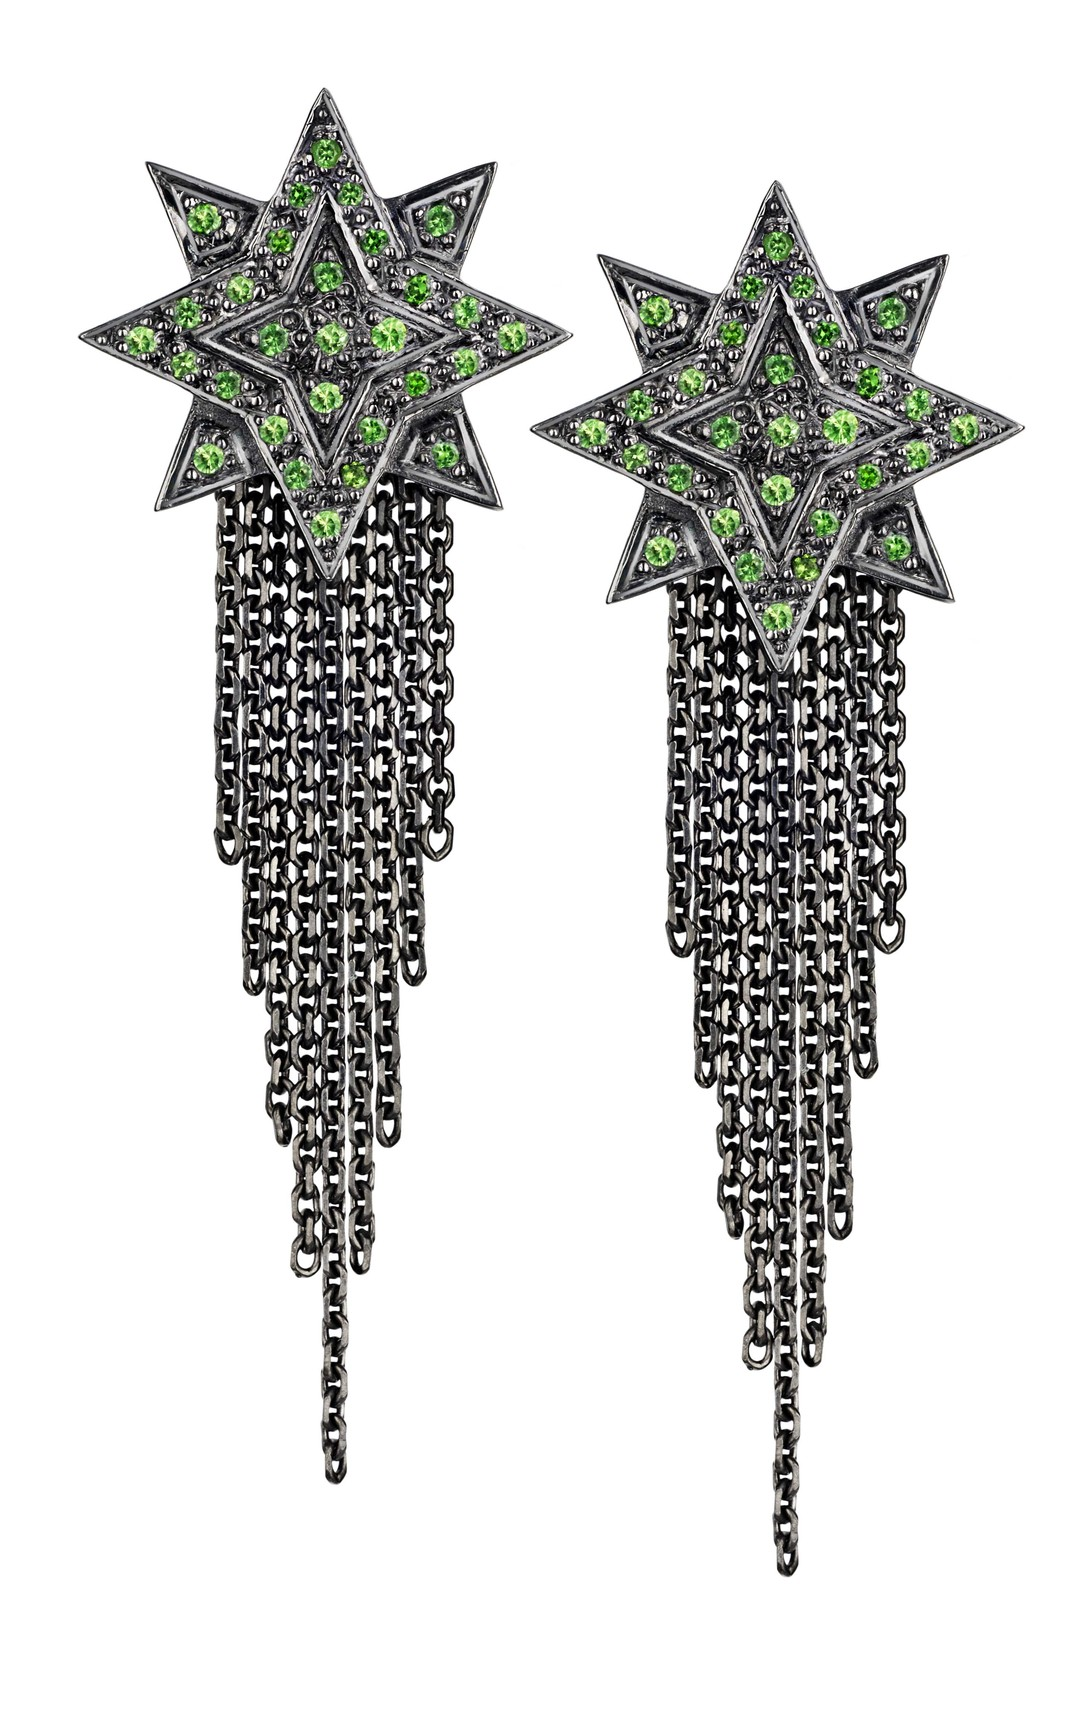 Ana de Costa earrings in blackened white gold from the Alchemy collection, pavé set with tsavorites.